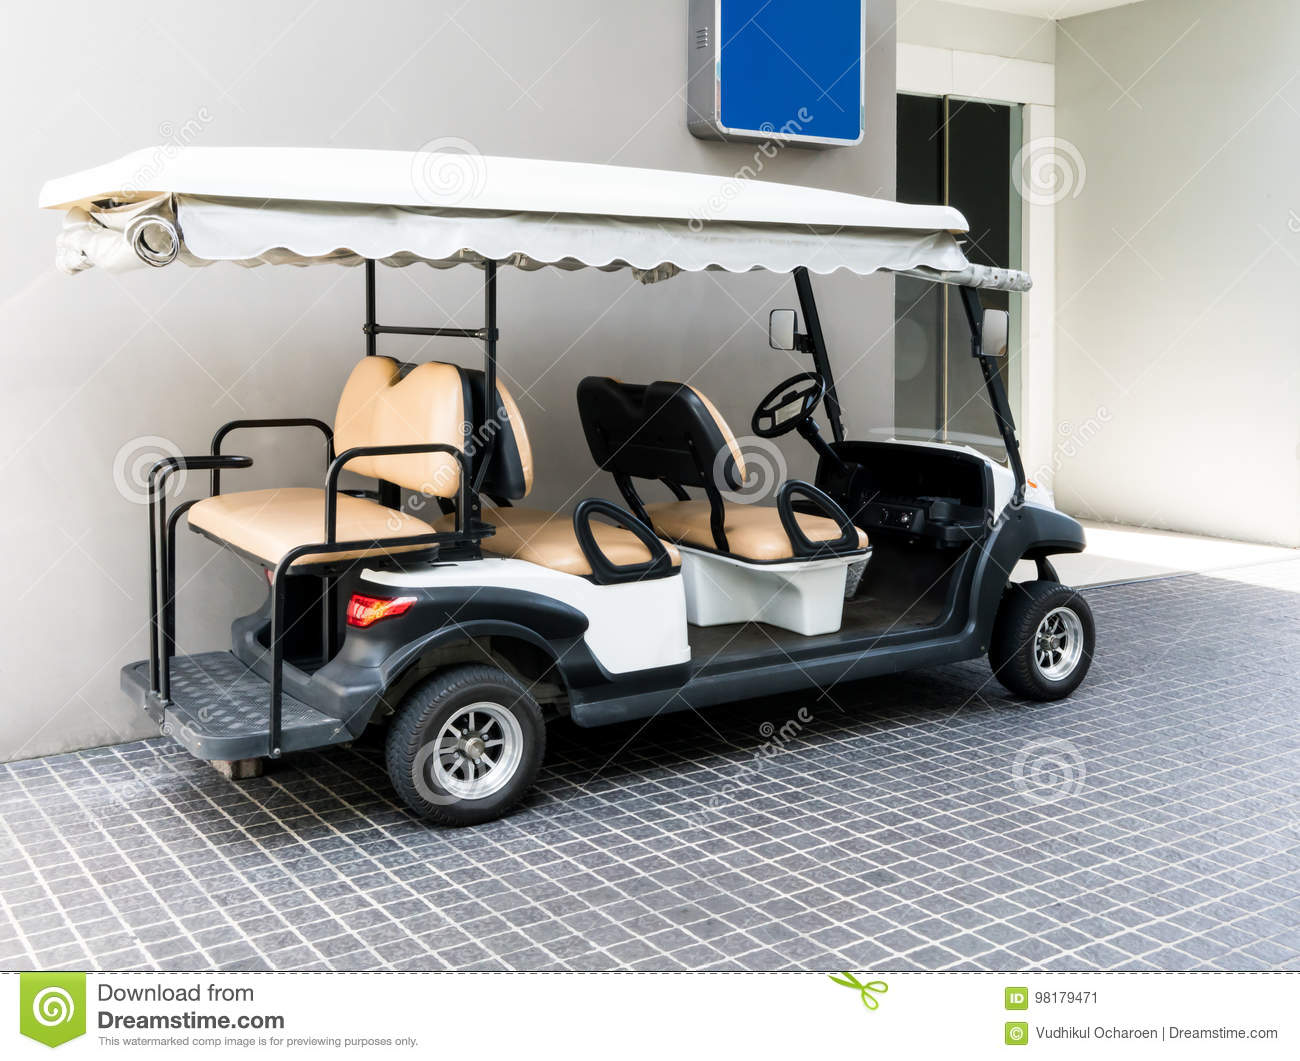 White Golf Cart With Back Seats In The Public Building Stock Image on golf players, golf tools, golf games, golf words, golf buggy, golf trolley, golf cartoons, golf card, golf girls, golf handicap, golf machine, golf hitting nets, golf accessories,